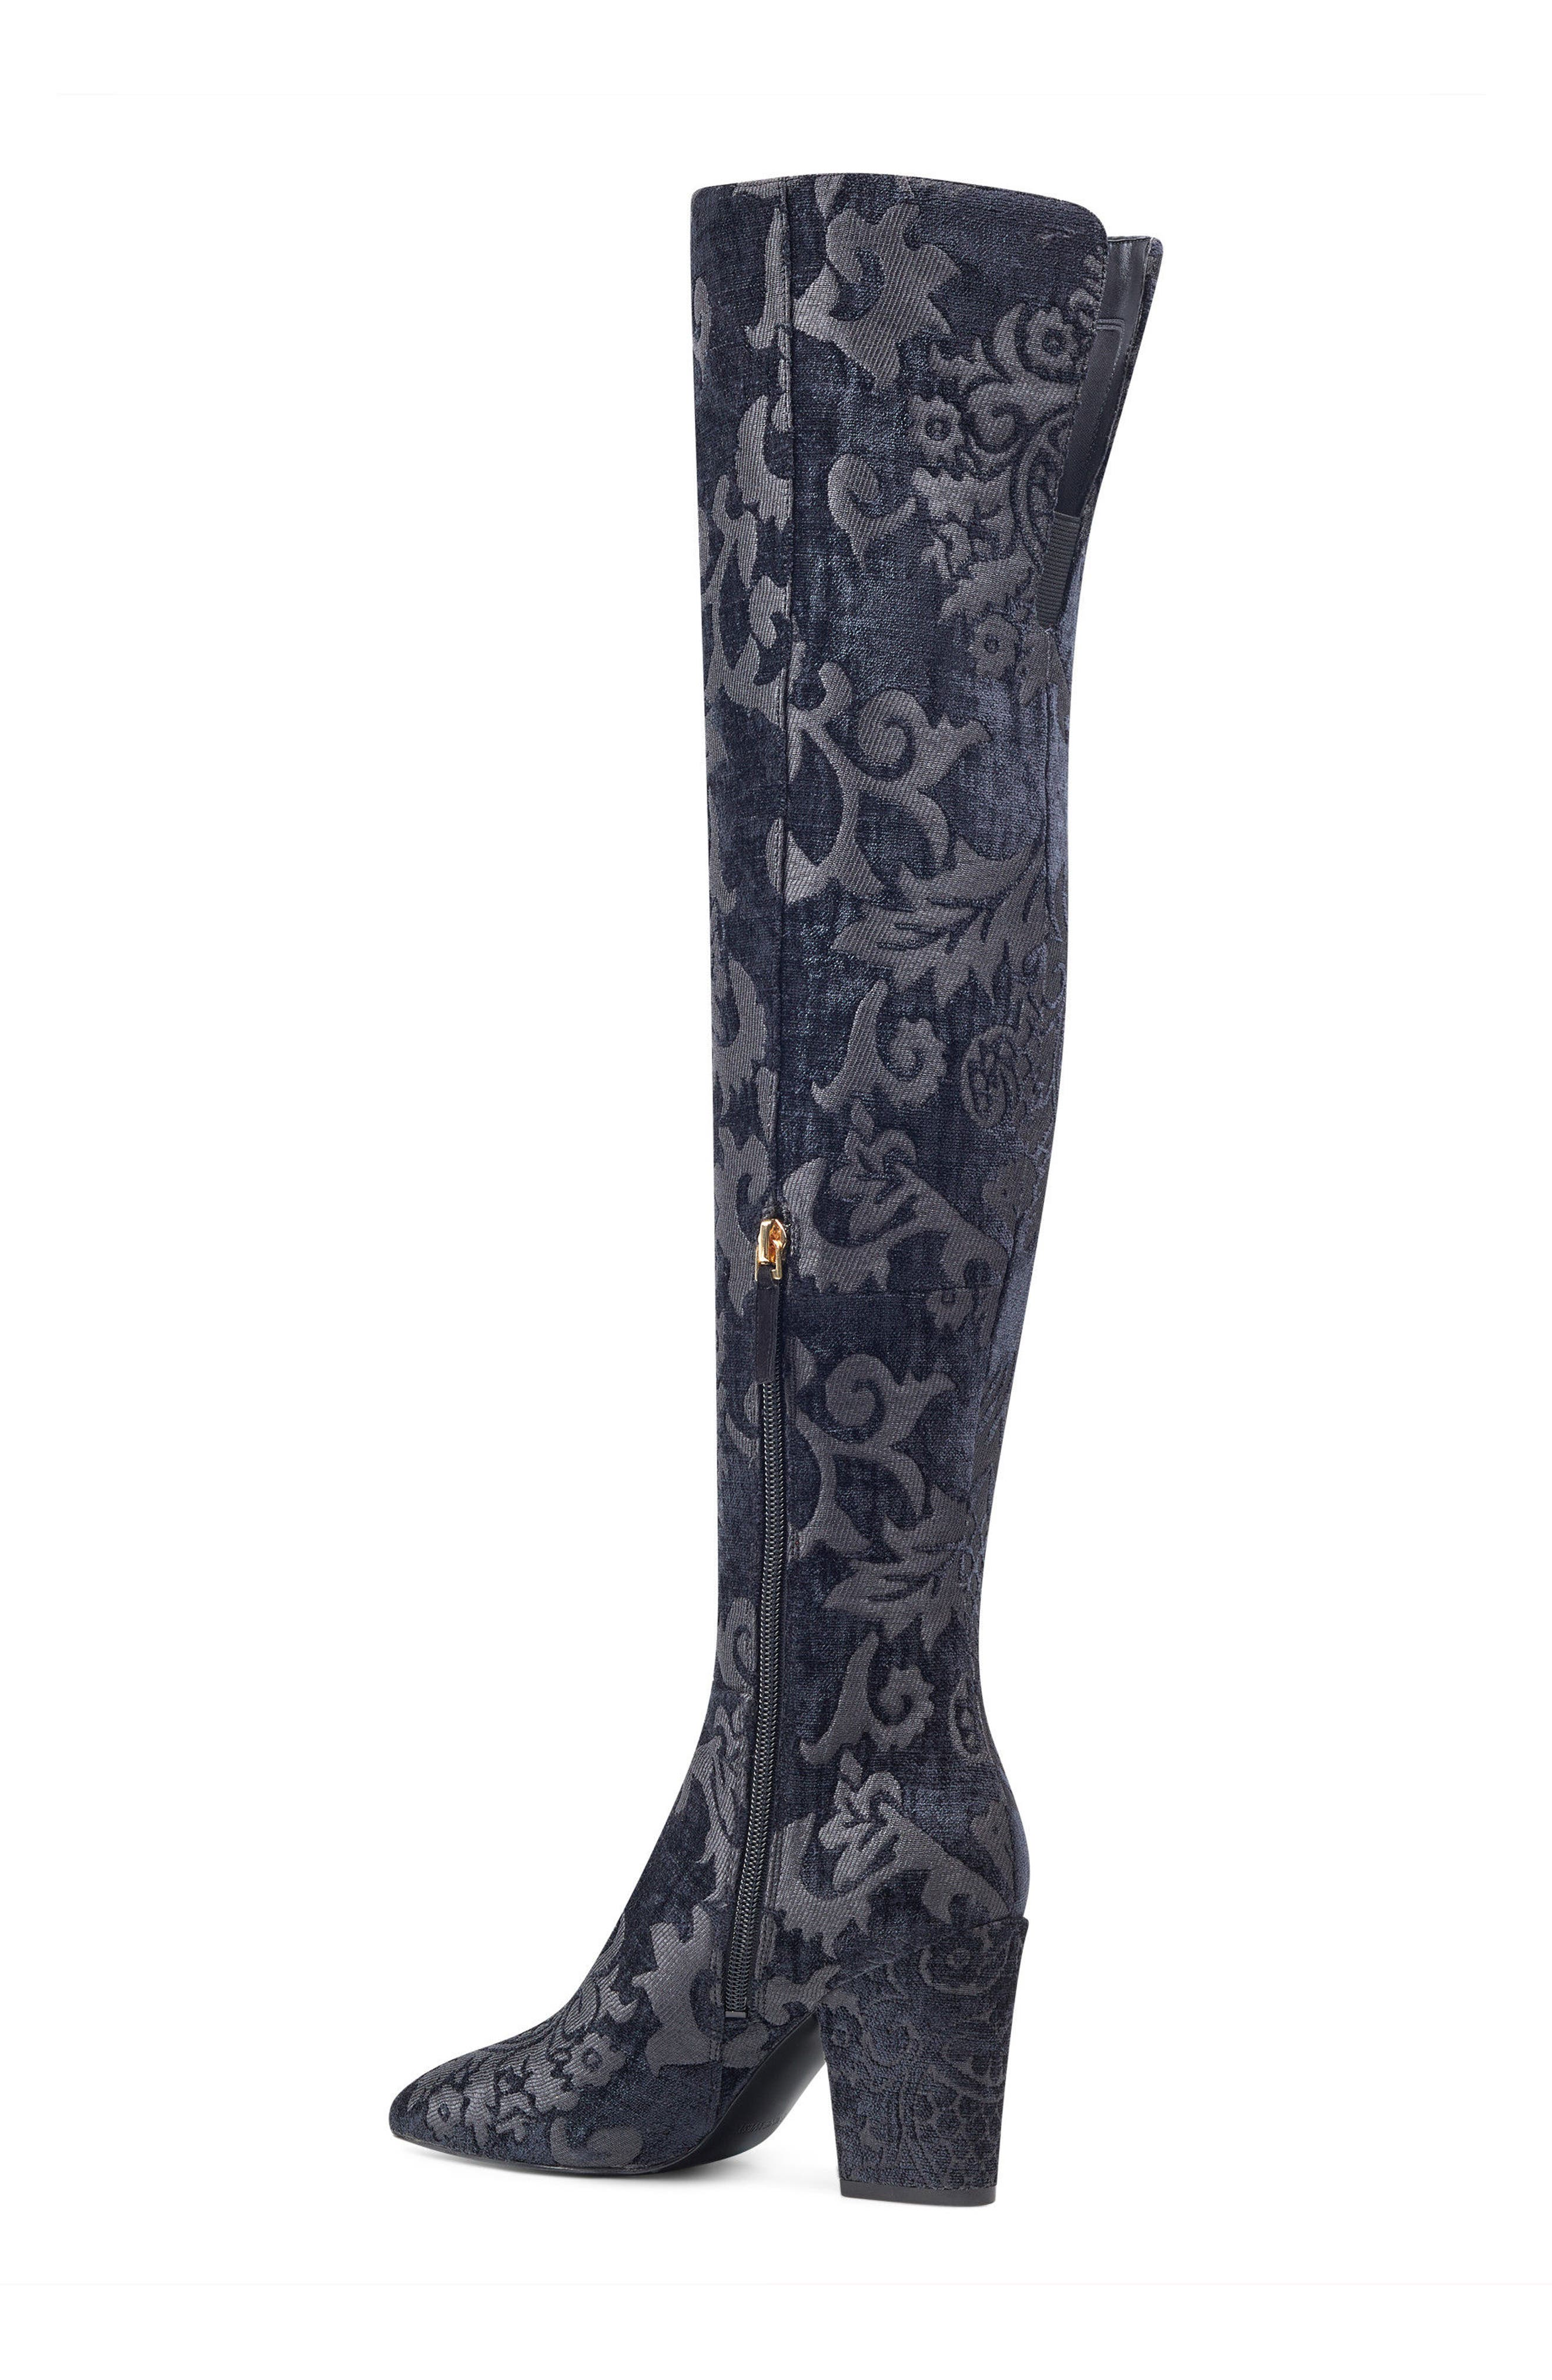 Siventa Over the Knee Boot,                             Alternate thumbnail 2, color,                             001